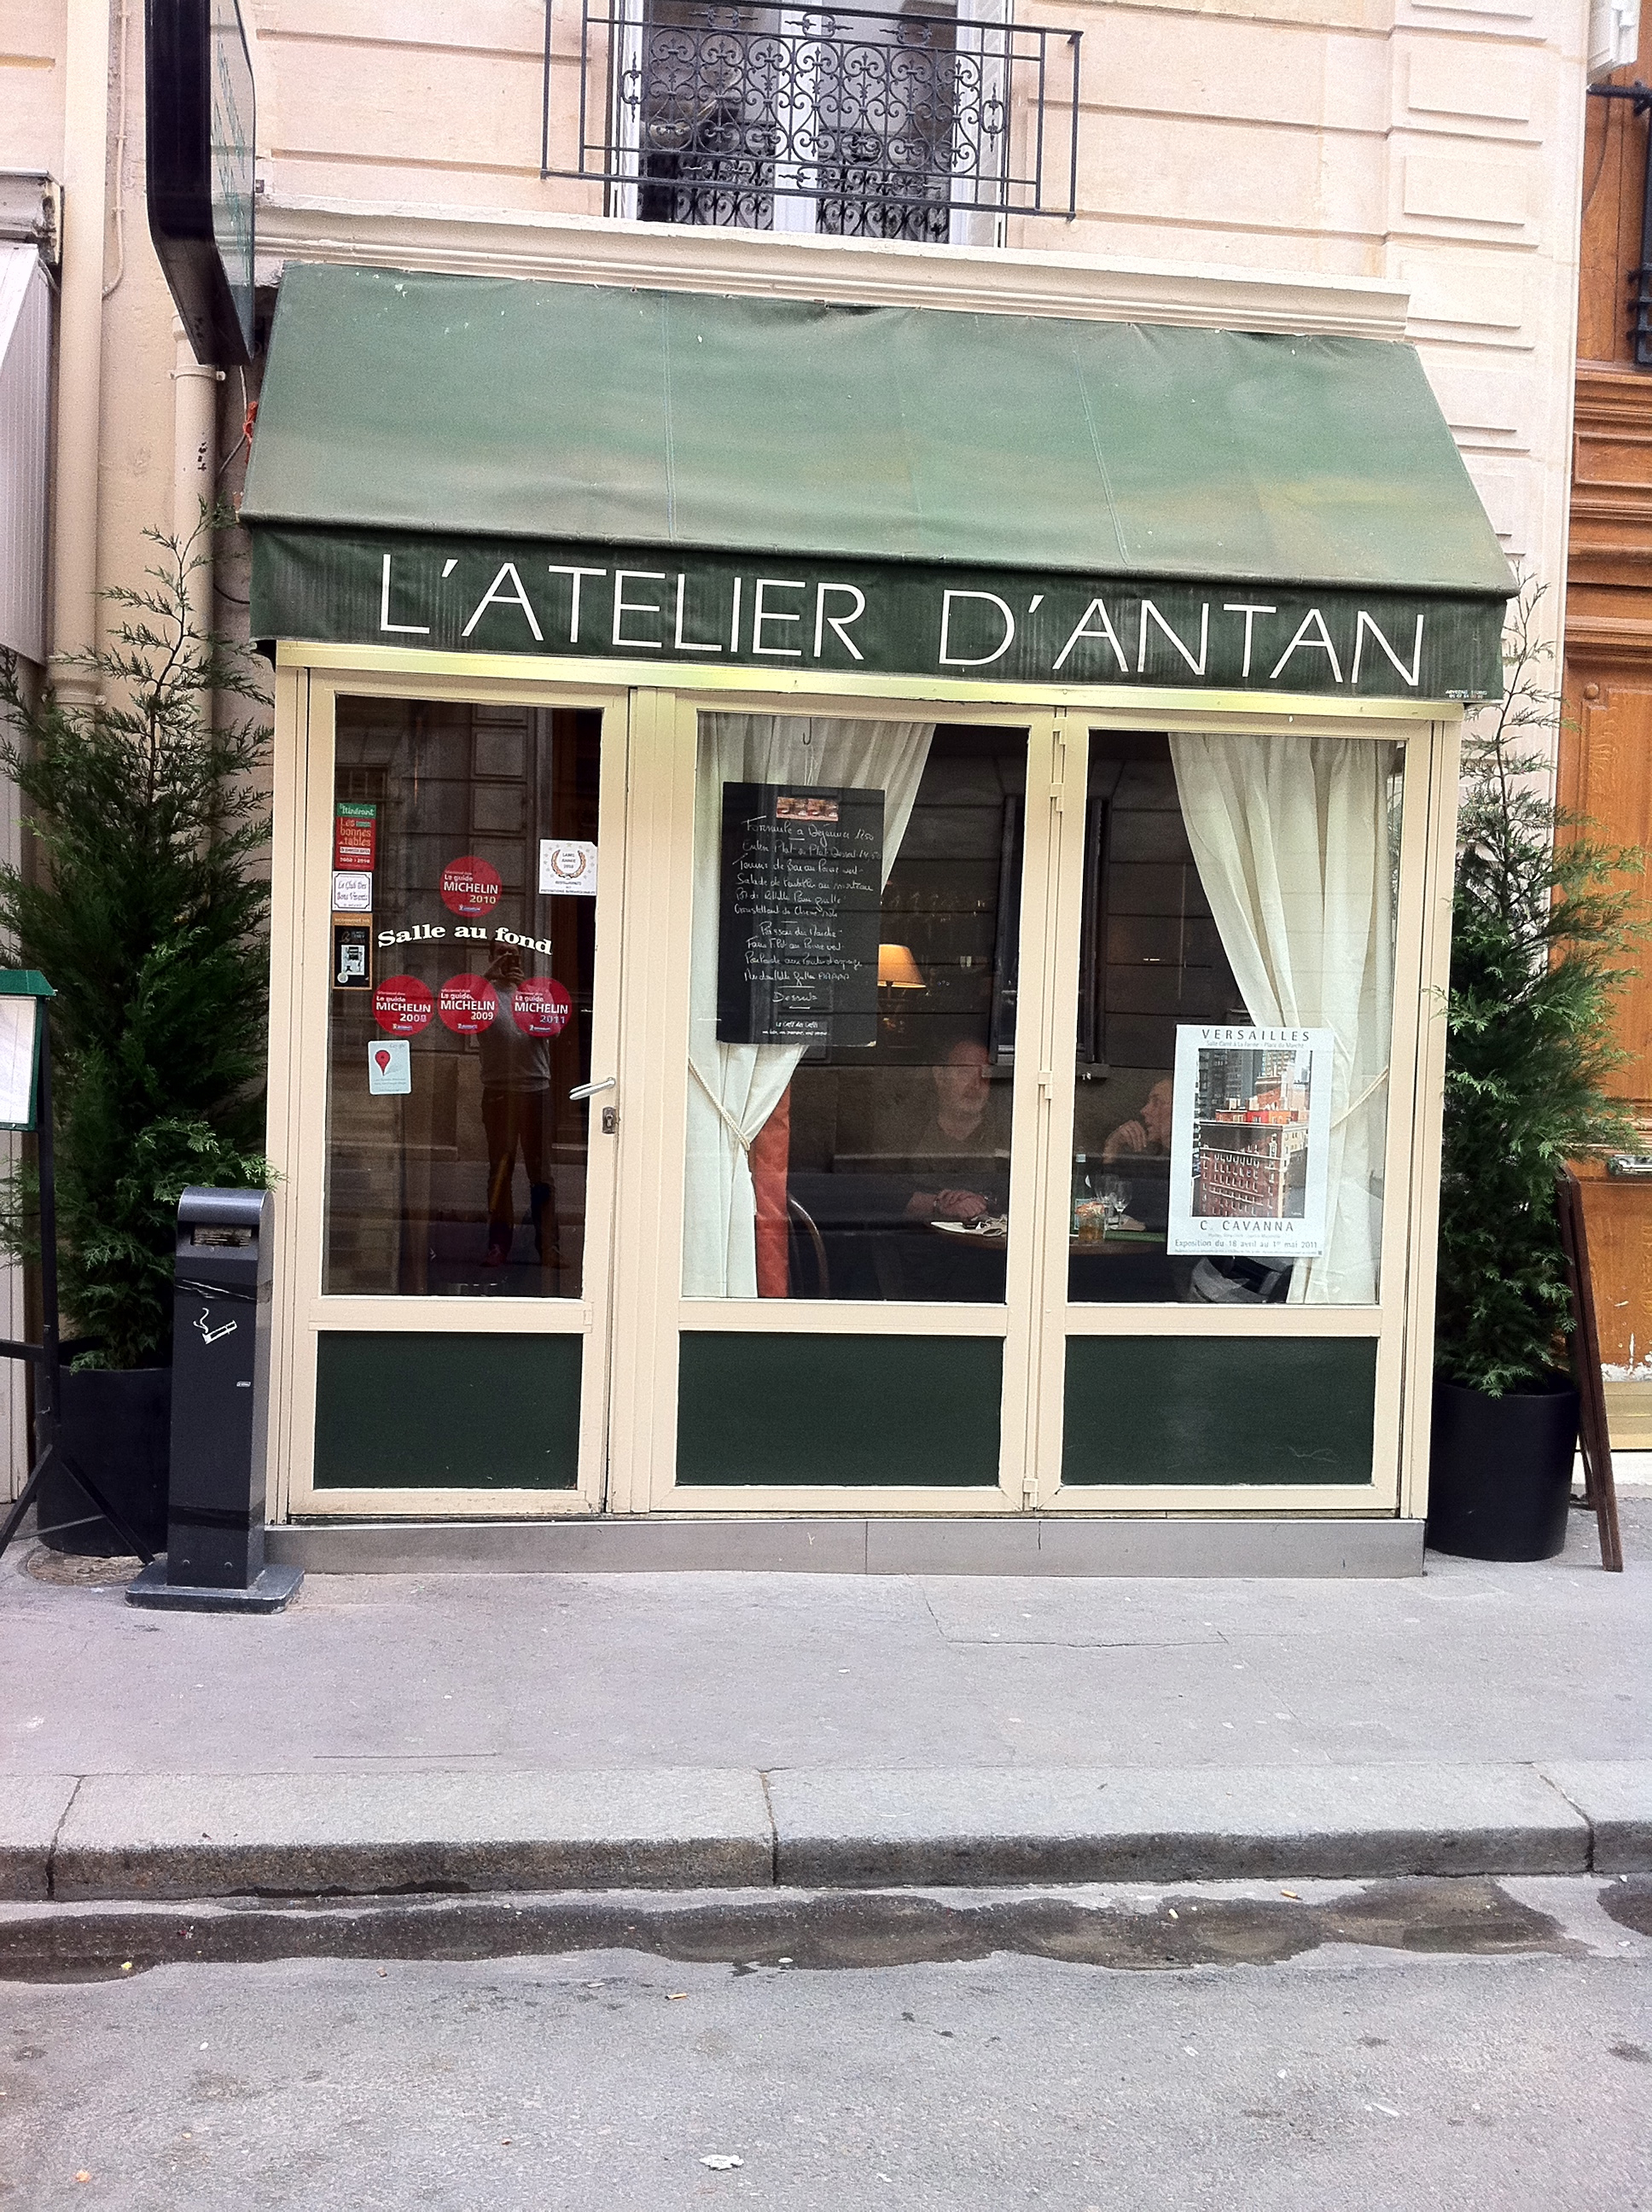 L Atelier 50 l'atelier d'antan-great bistro food and a really good time